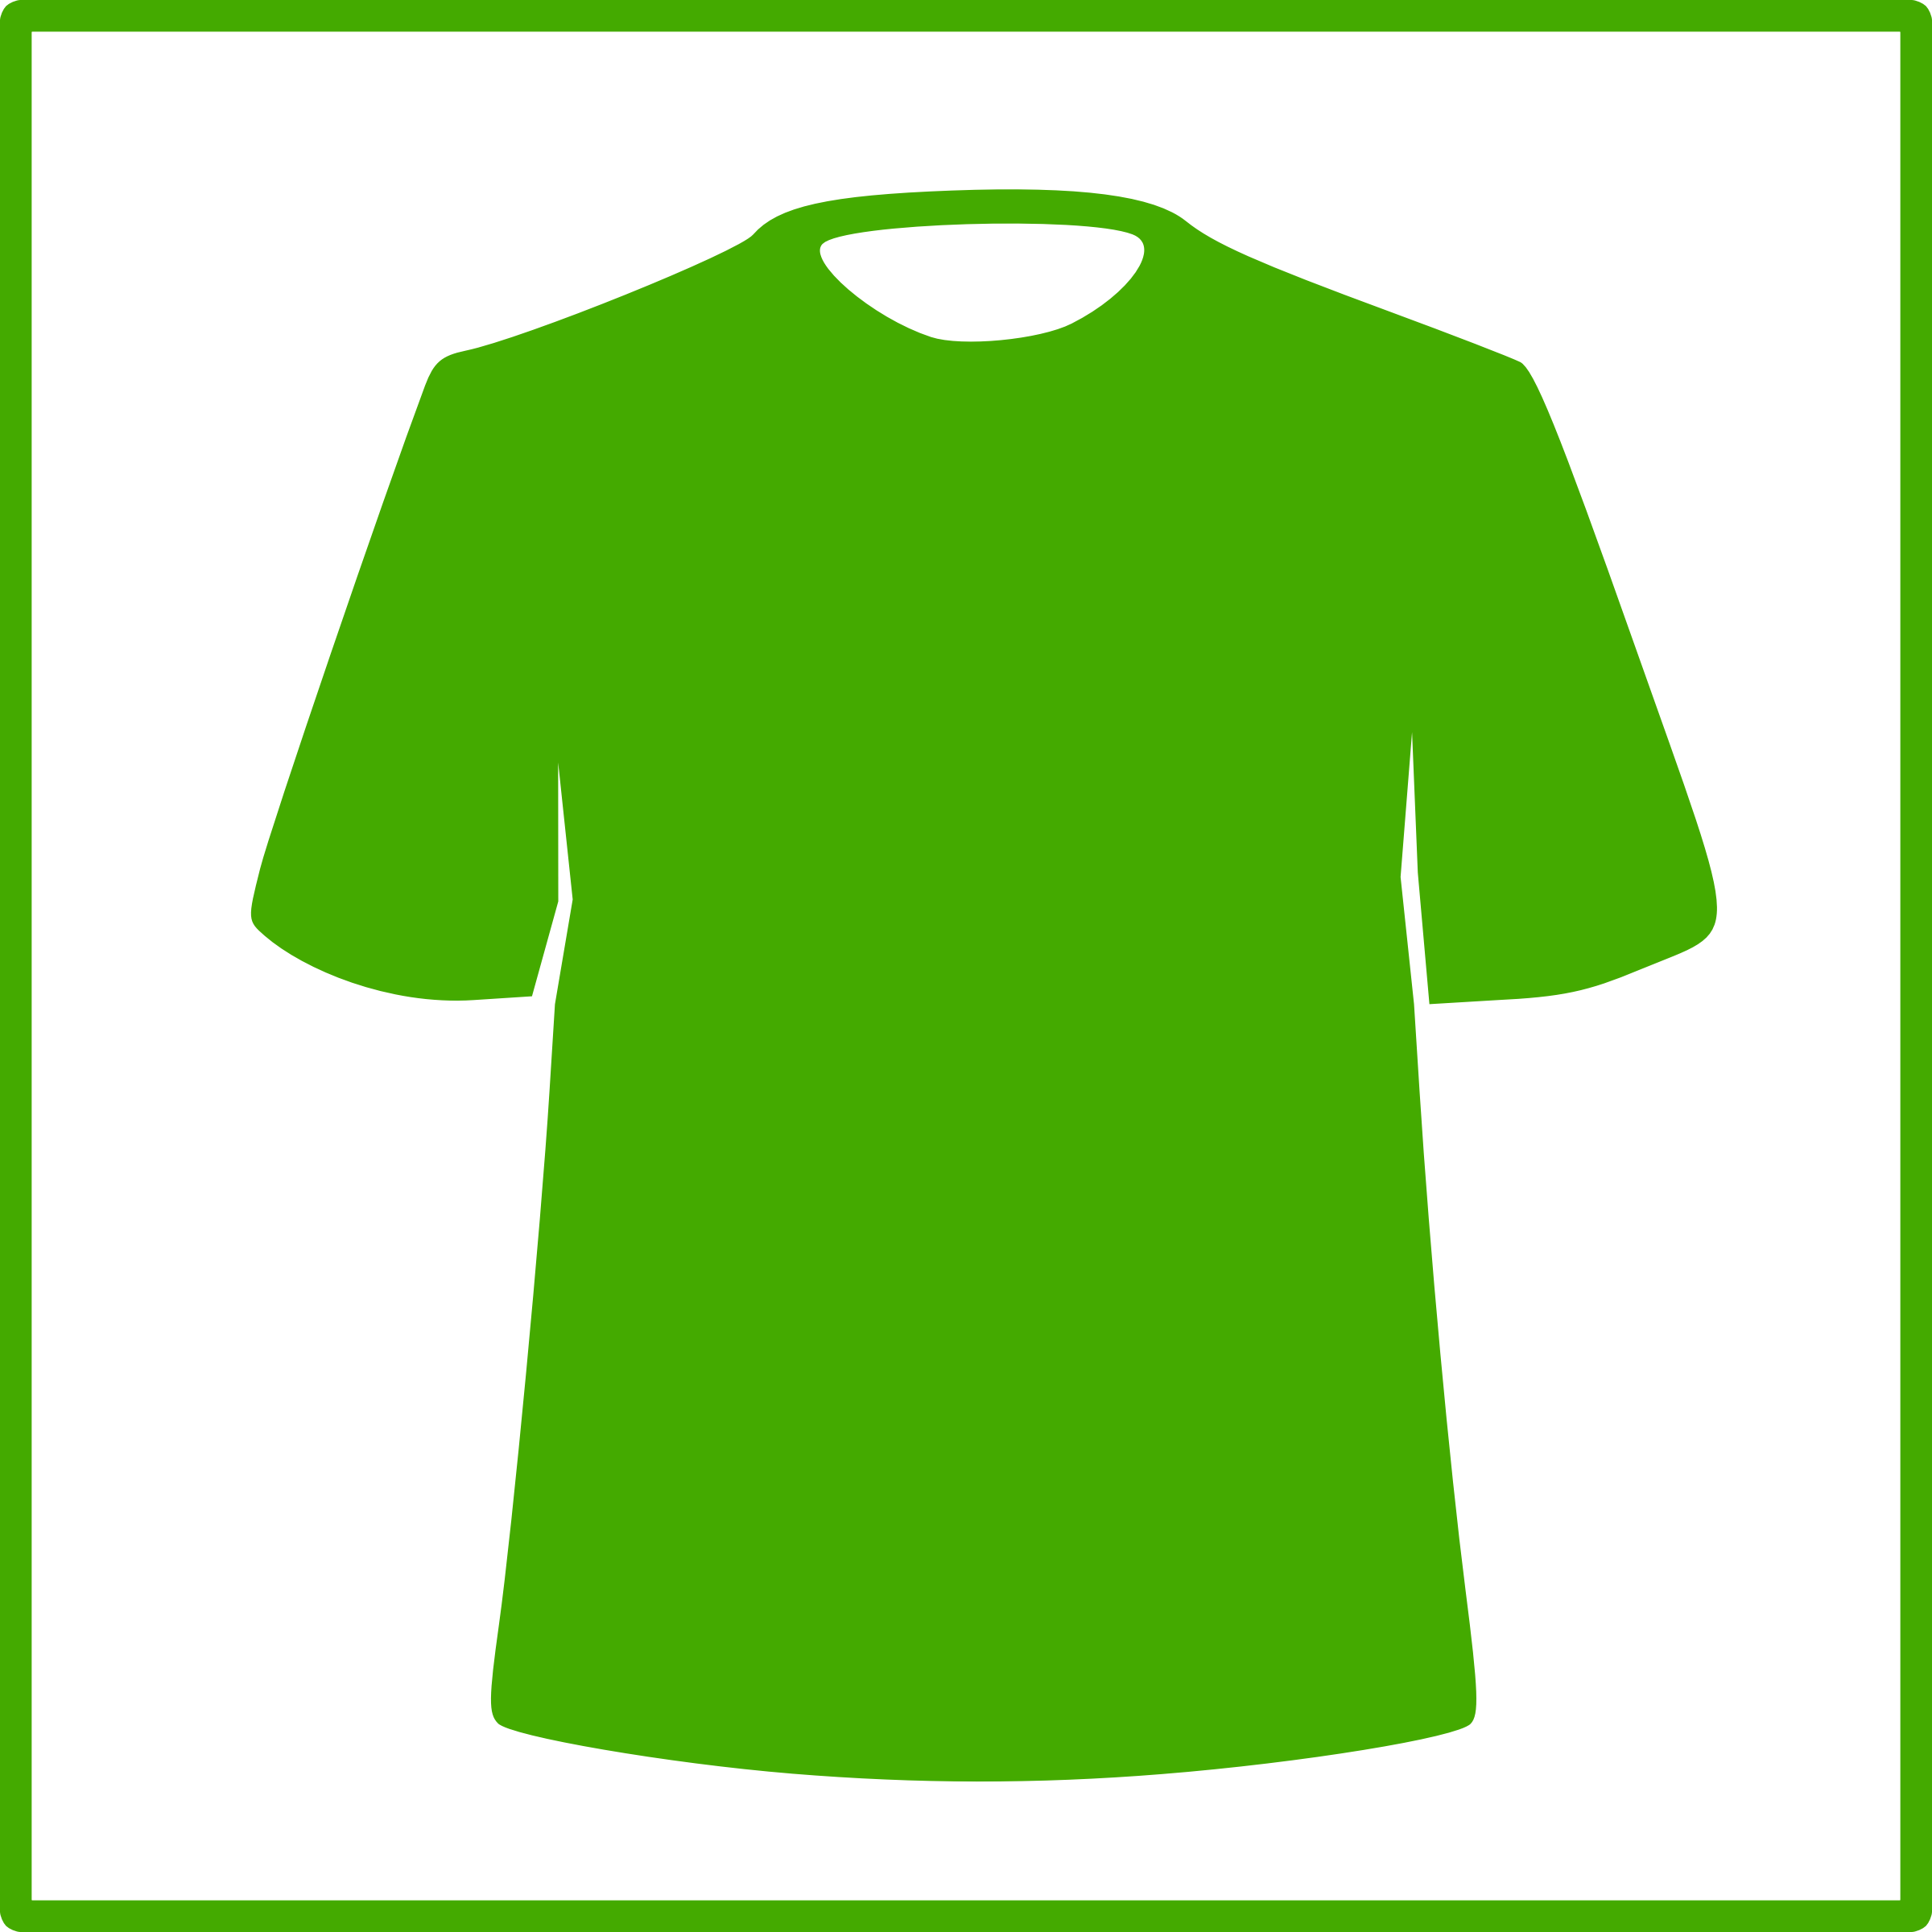 eco green clothing icon by dominiquechappard